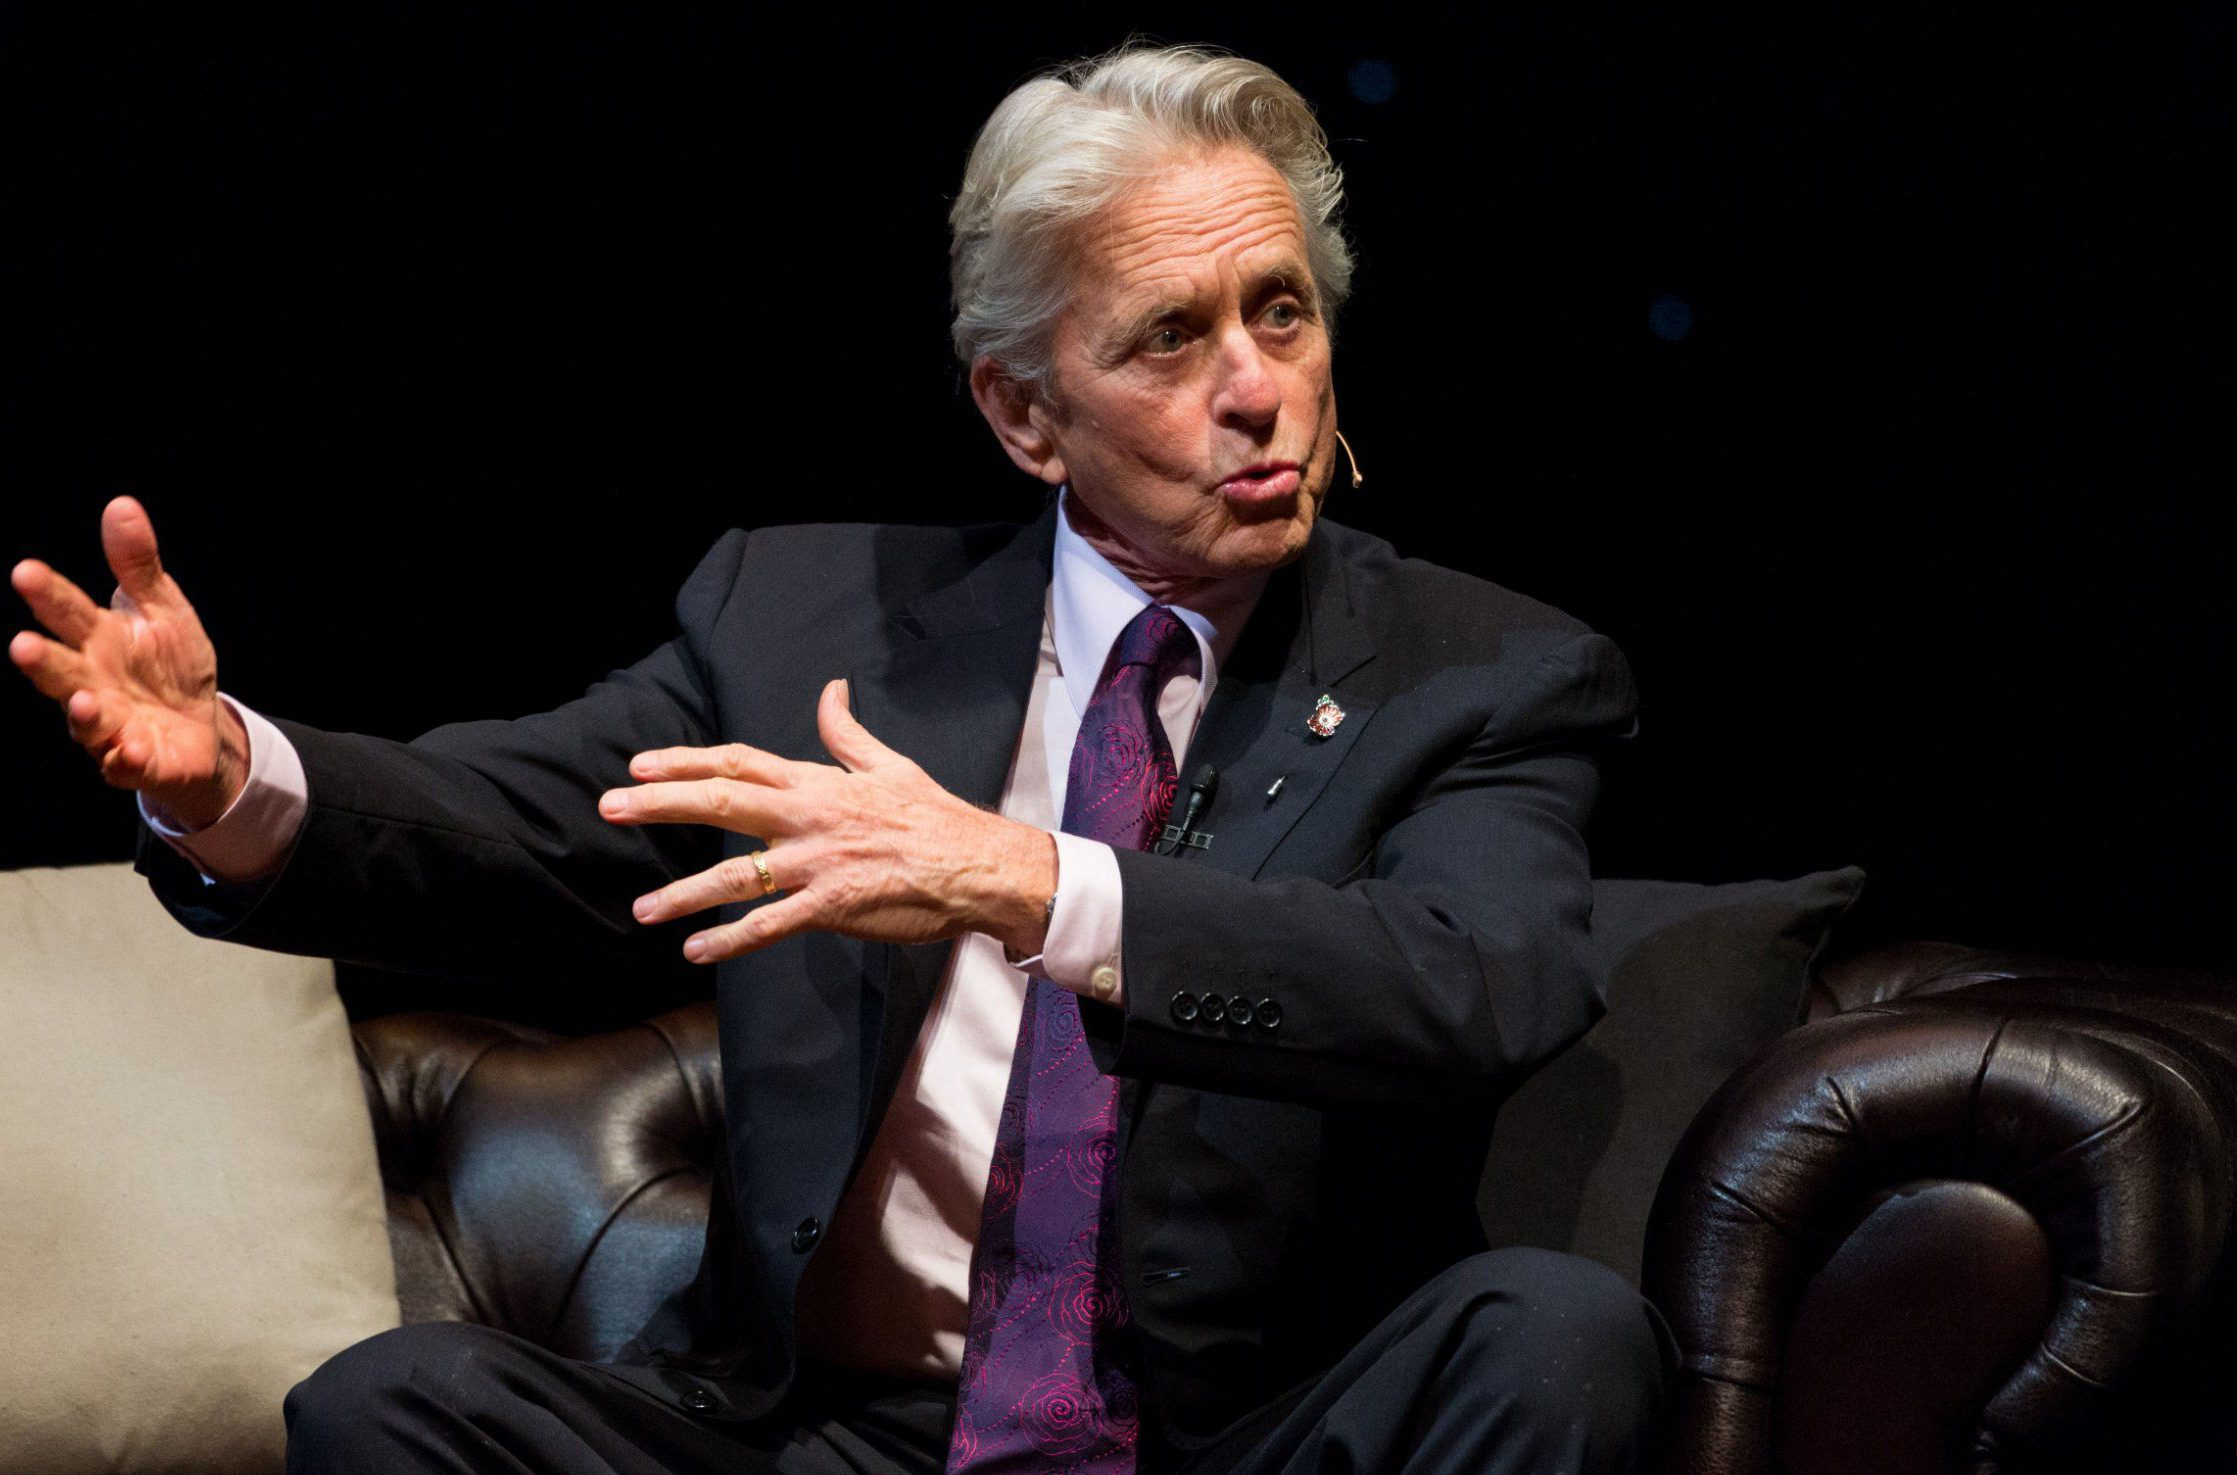 Mandatory Credit: Photo by Ray Tang/REX/Shutterstock (6898965i) Hollywood legend actor Michael Douglas in conversation with Jonathan Ross, as he reflects on his career and life 'An Evening with Michael Douglas', London, UK - 30 Oct 2016